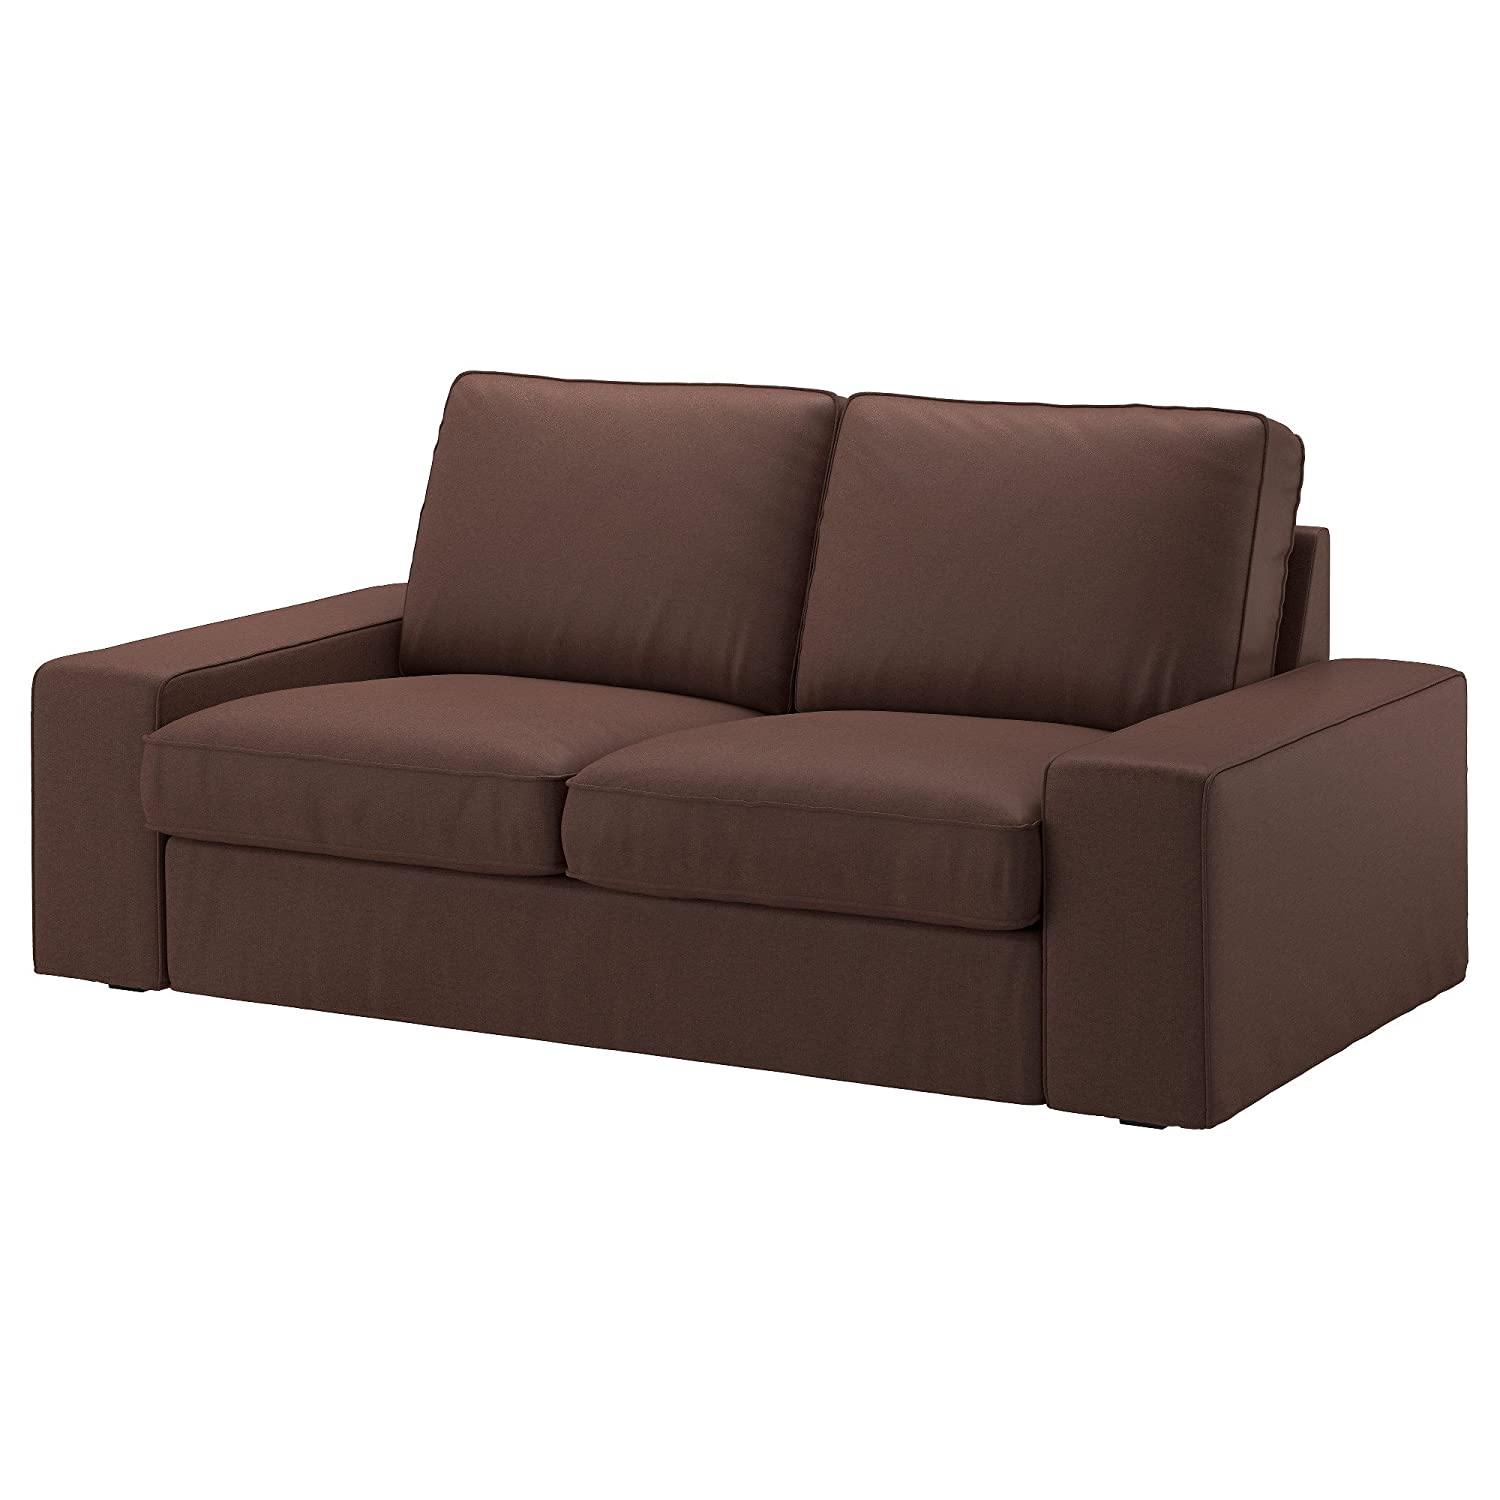 Amazon.com: IKEA Genuine Slipcover for Kivik Sofa, Loveseat and with ...